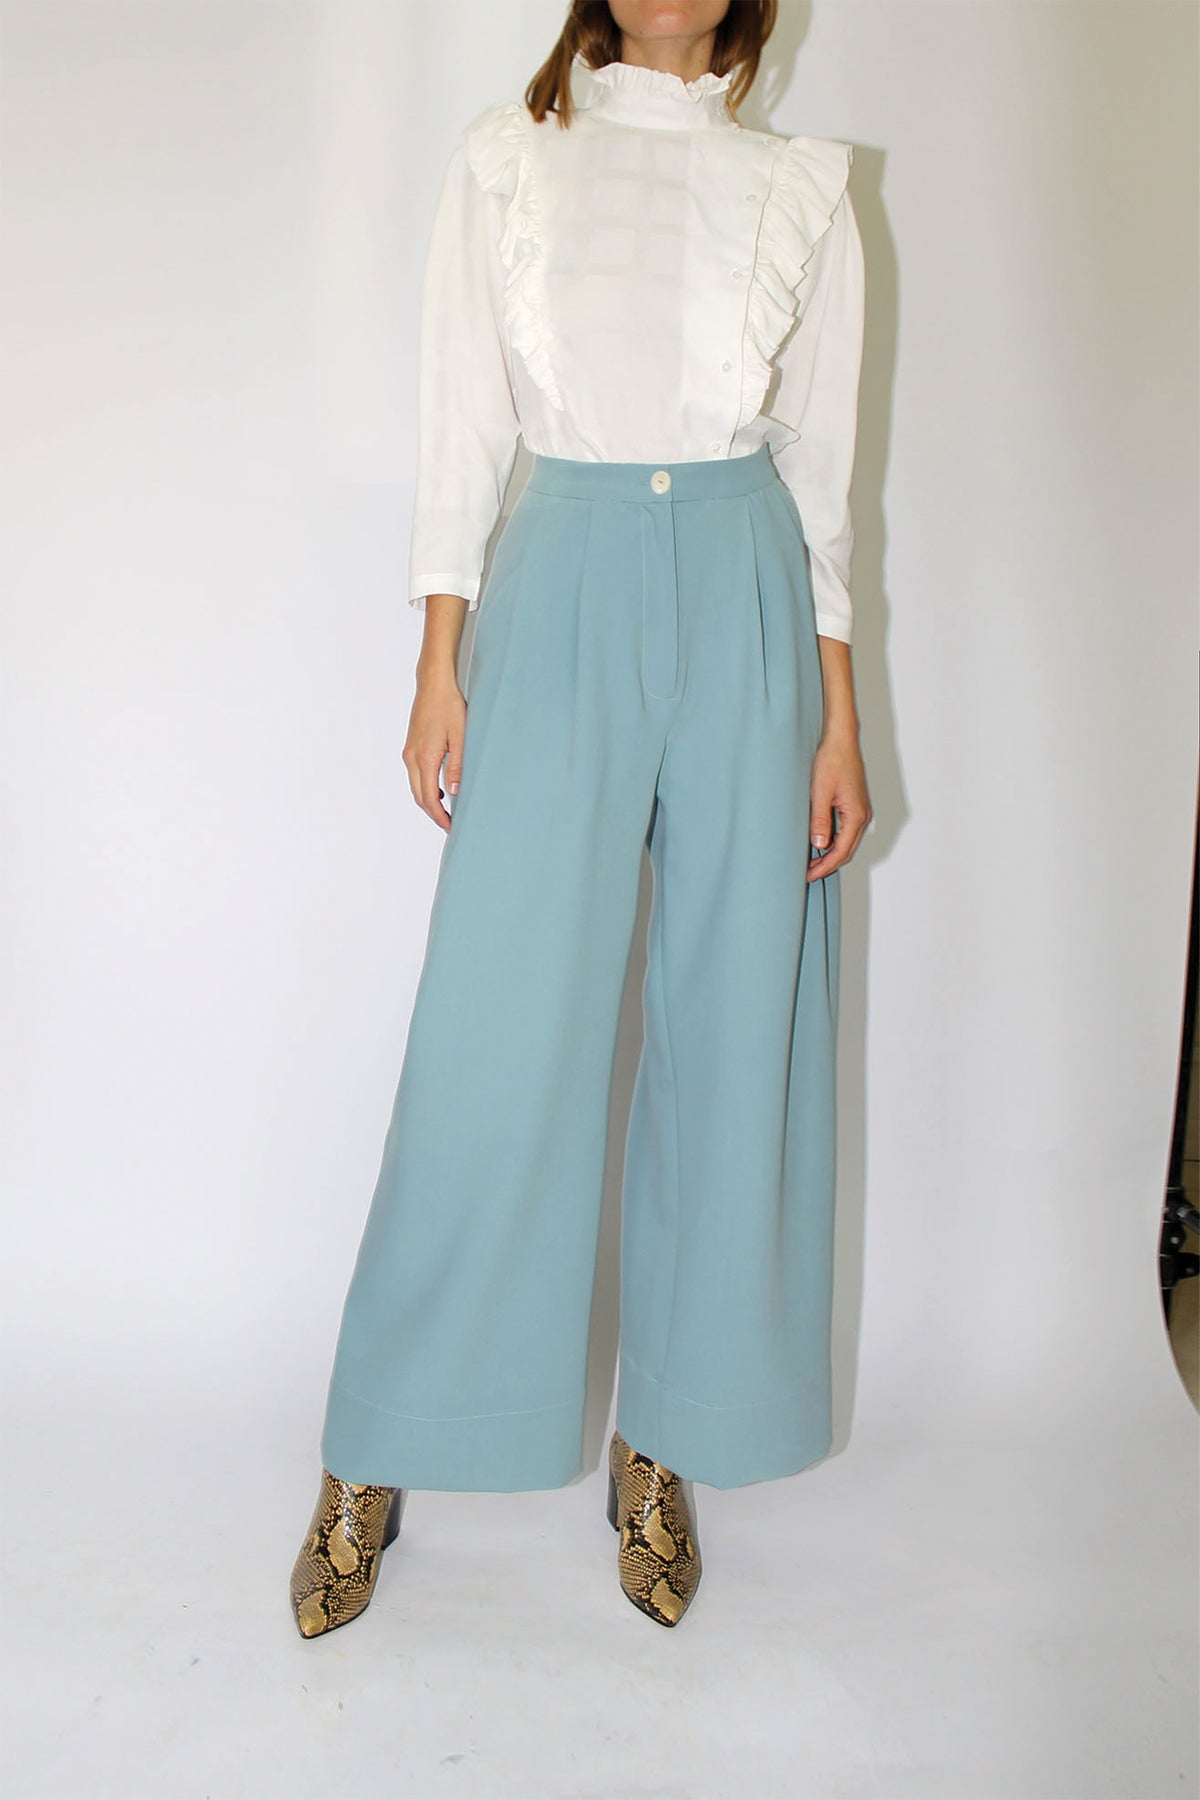 Mr. Larkin Babe Wide Pant in Smoke Blue